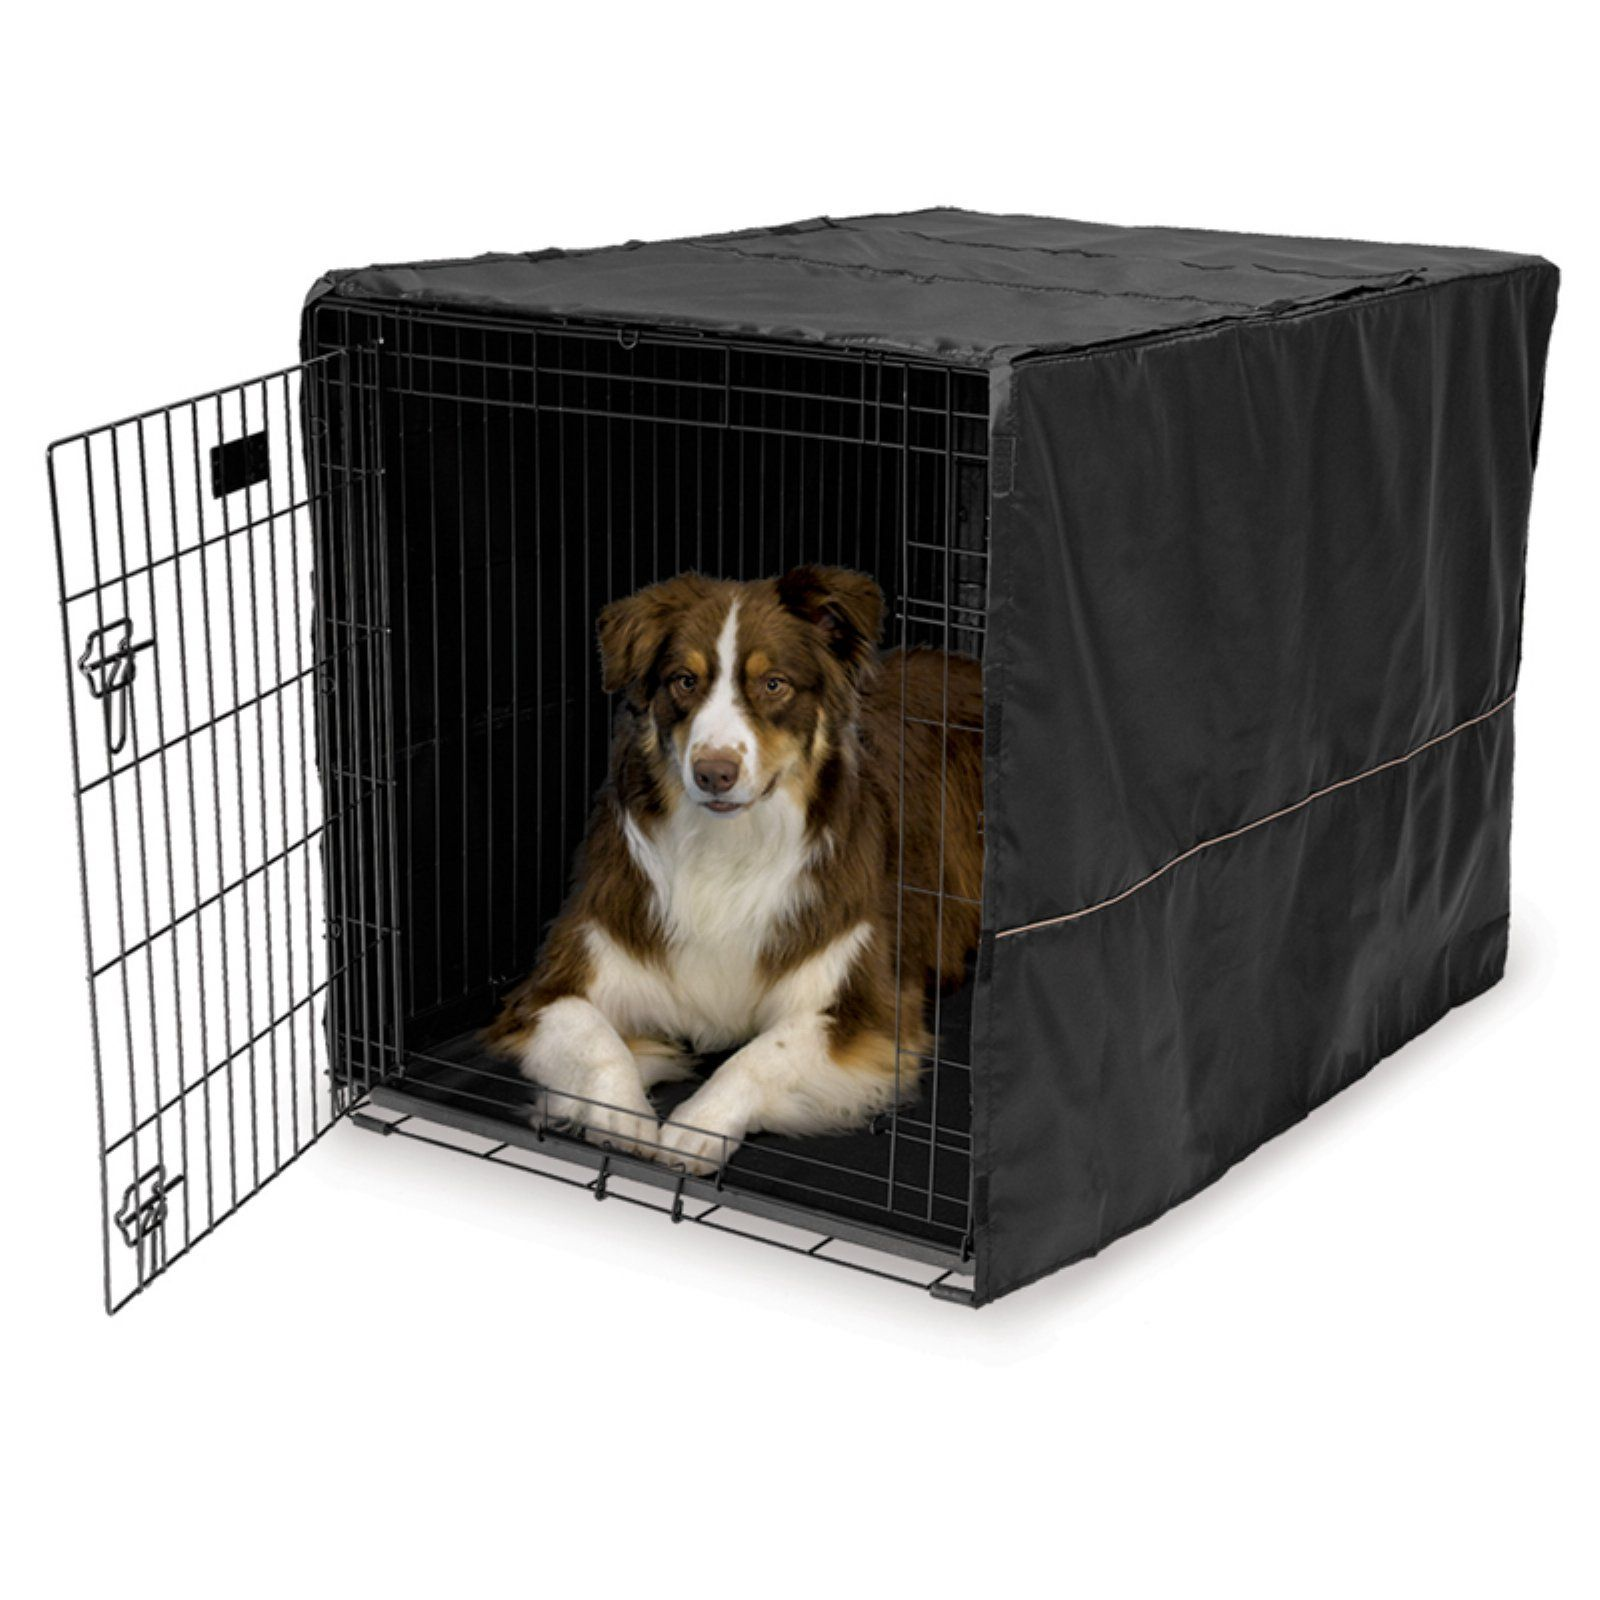 Midwest Homes For Pets Metal Dog Crate Cover Dog Crate Cover Dog Kennel Cover Large Dog Crate